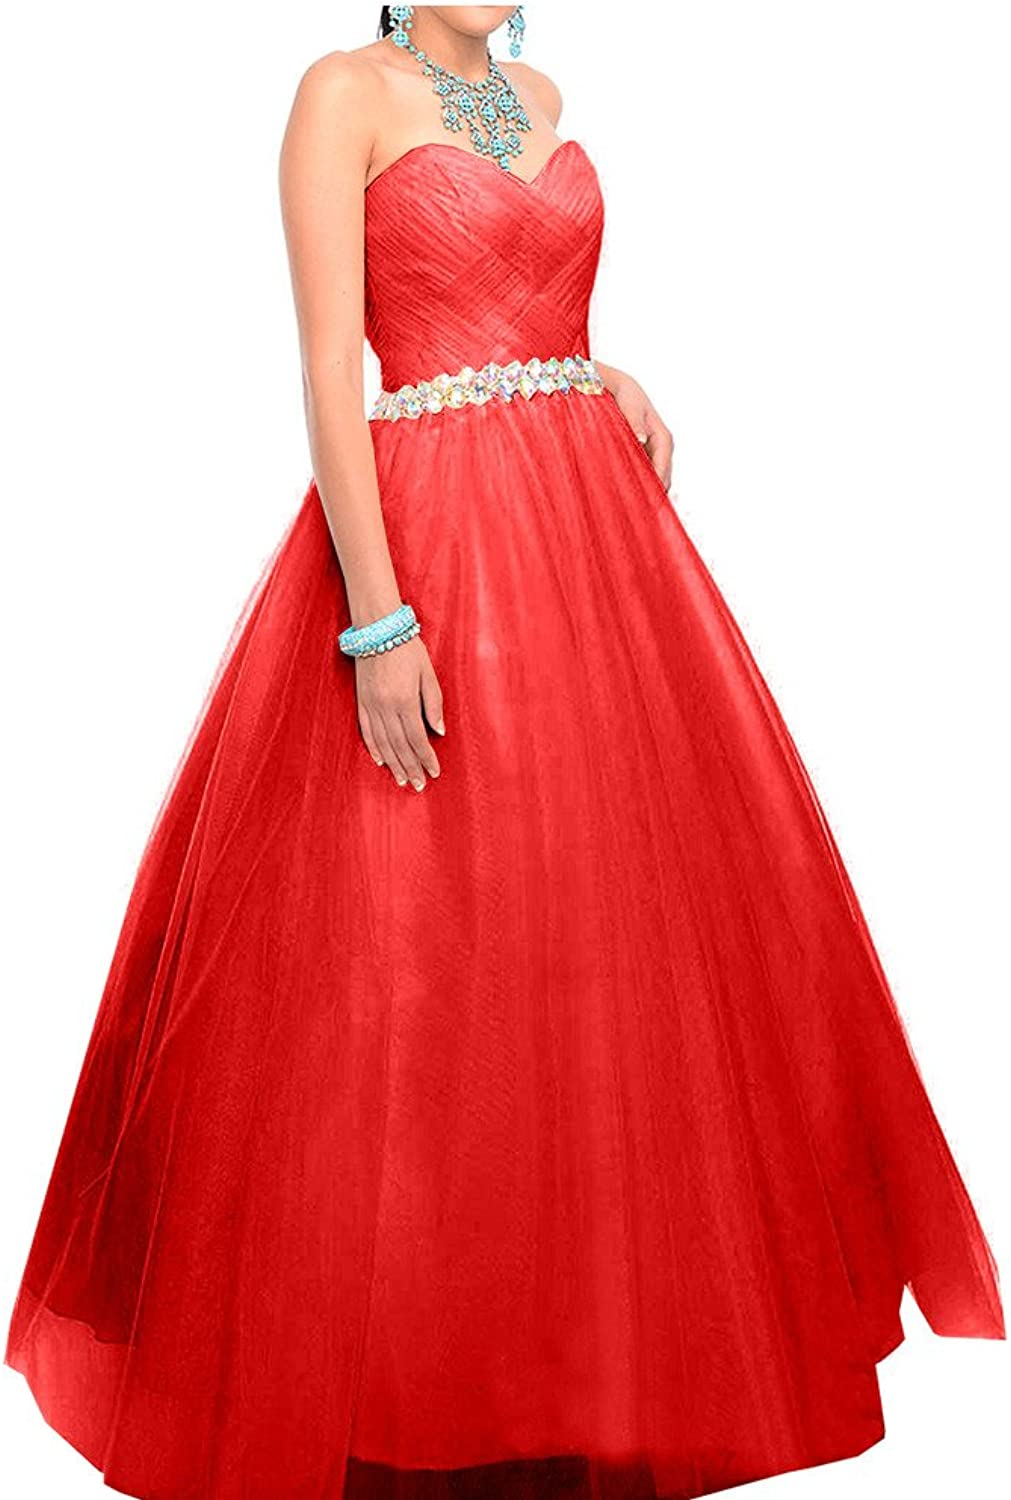 Avril Dress Strapless Ball Gown Lace Up Quinceanera Dresses Homecoming Dresses